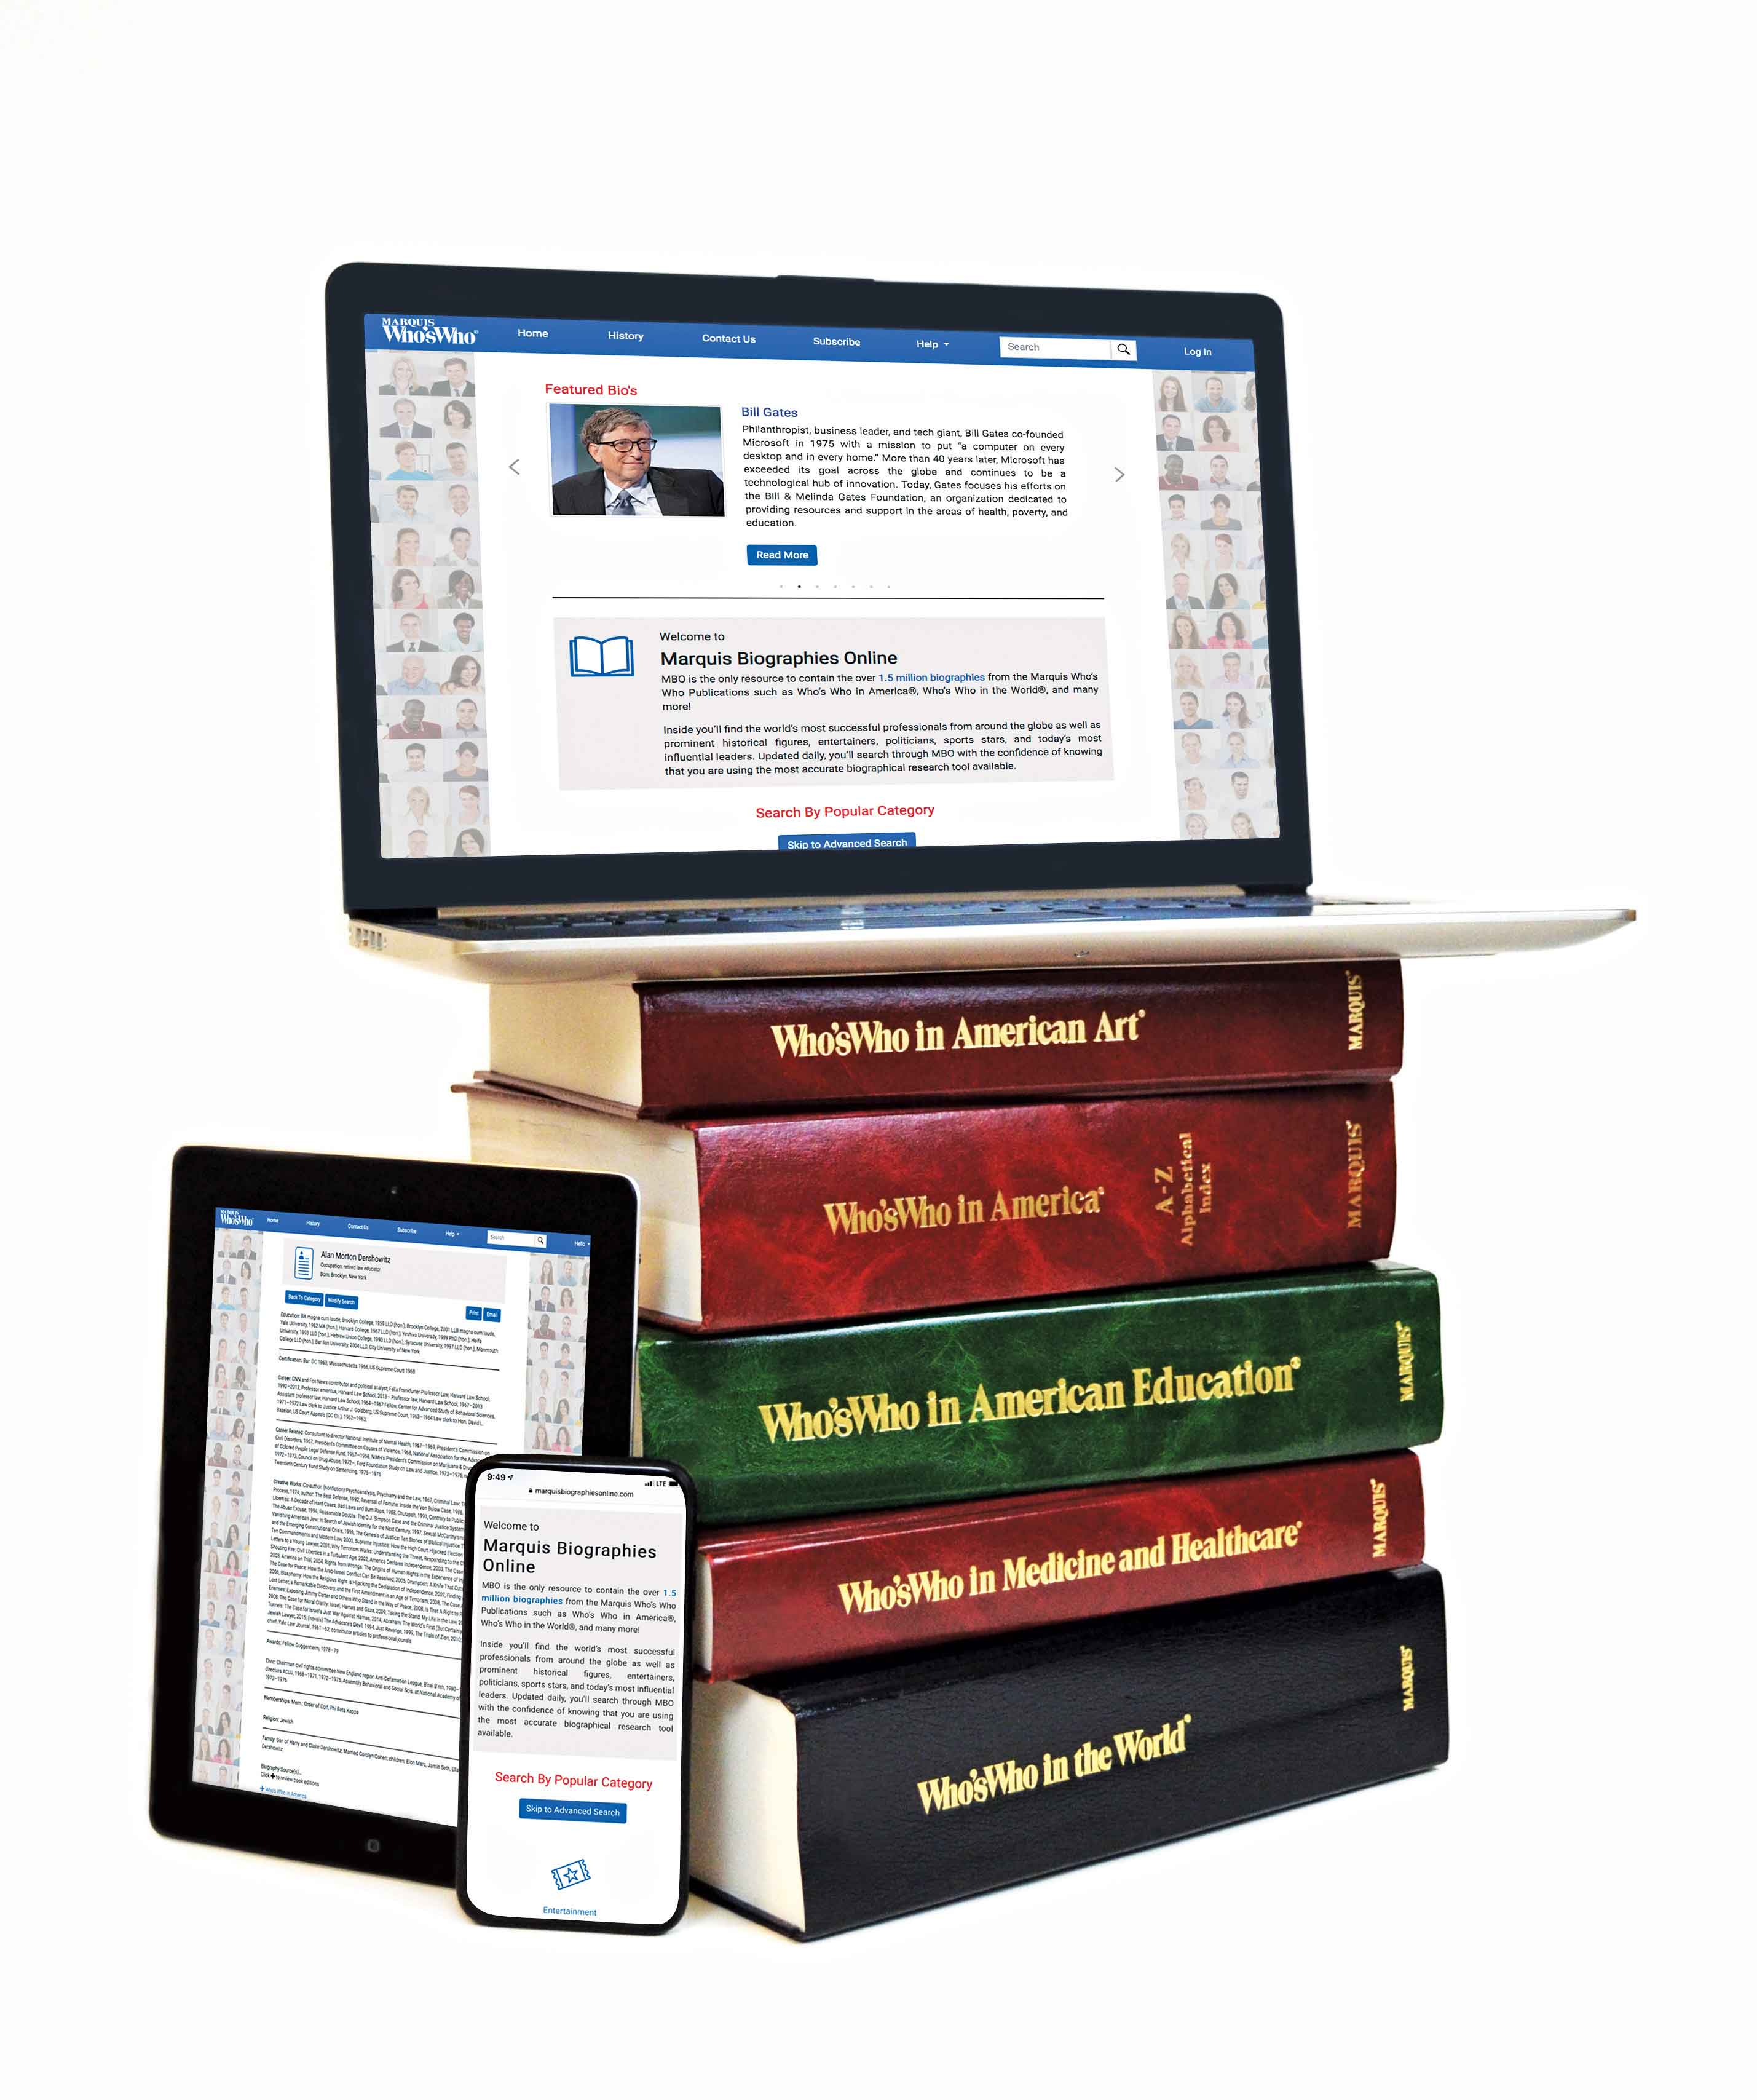 Marquis Biographies Online